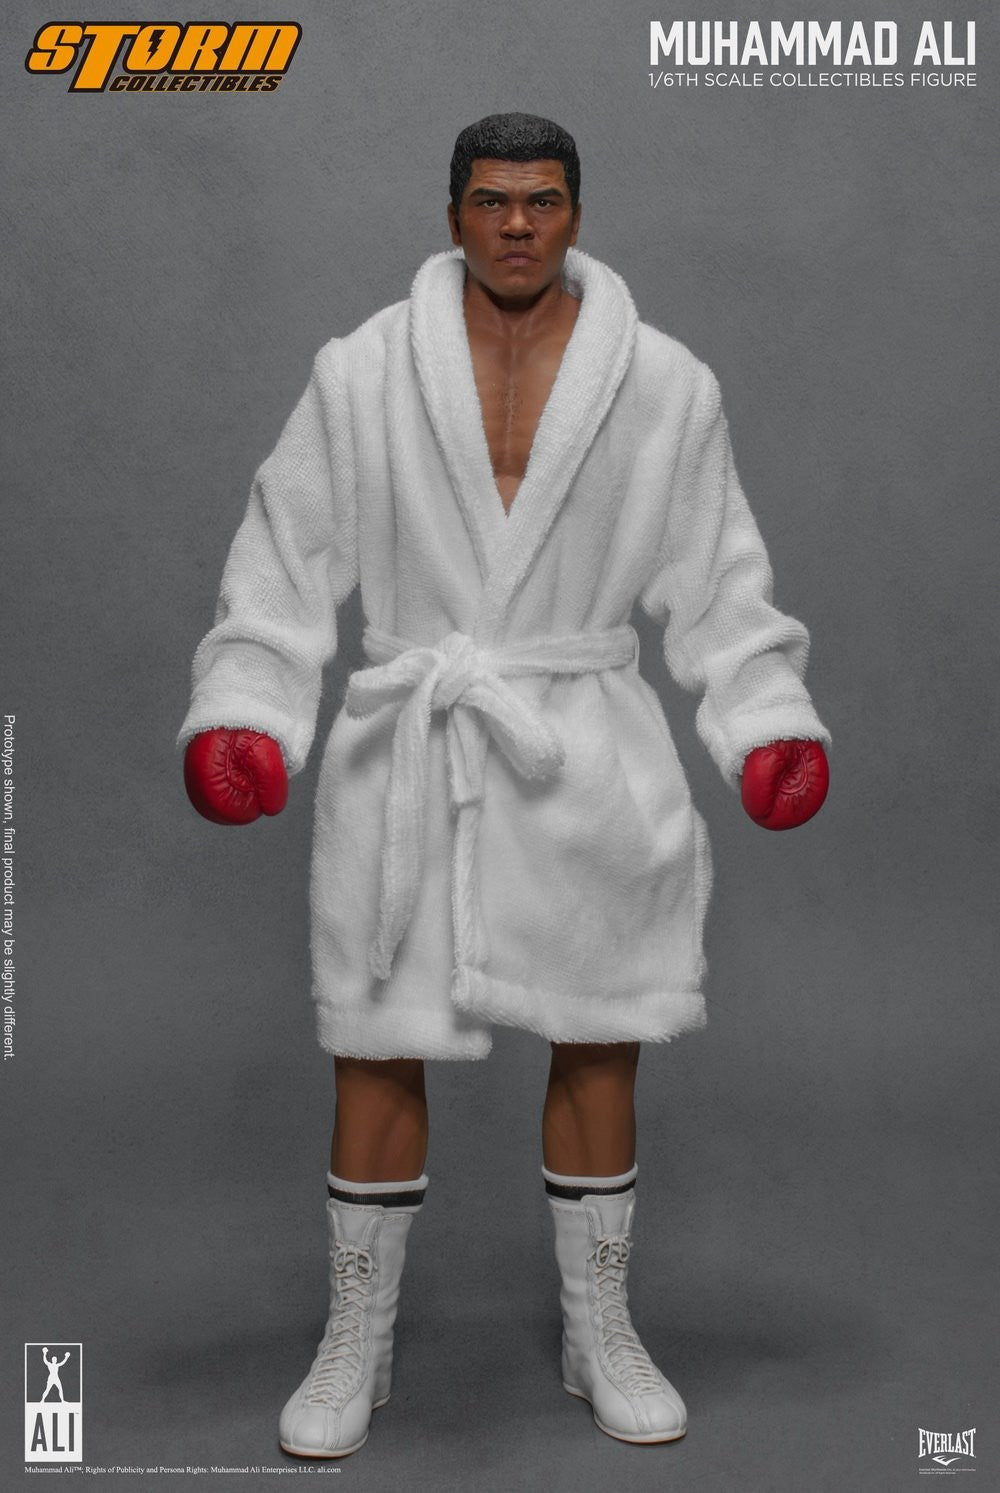 Storm Collectibles - Muhammad Ali (1/6 Scale)